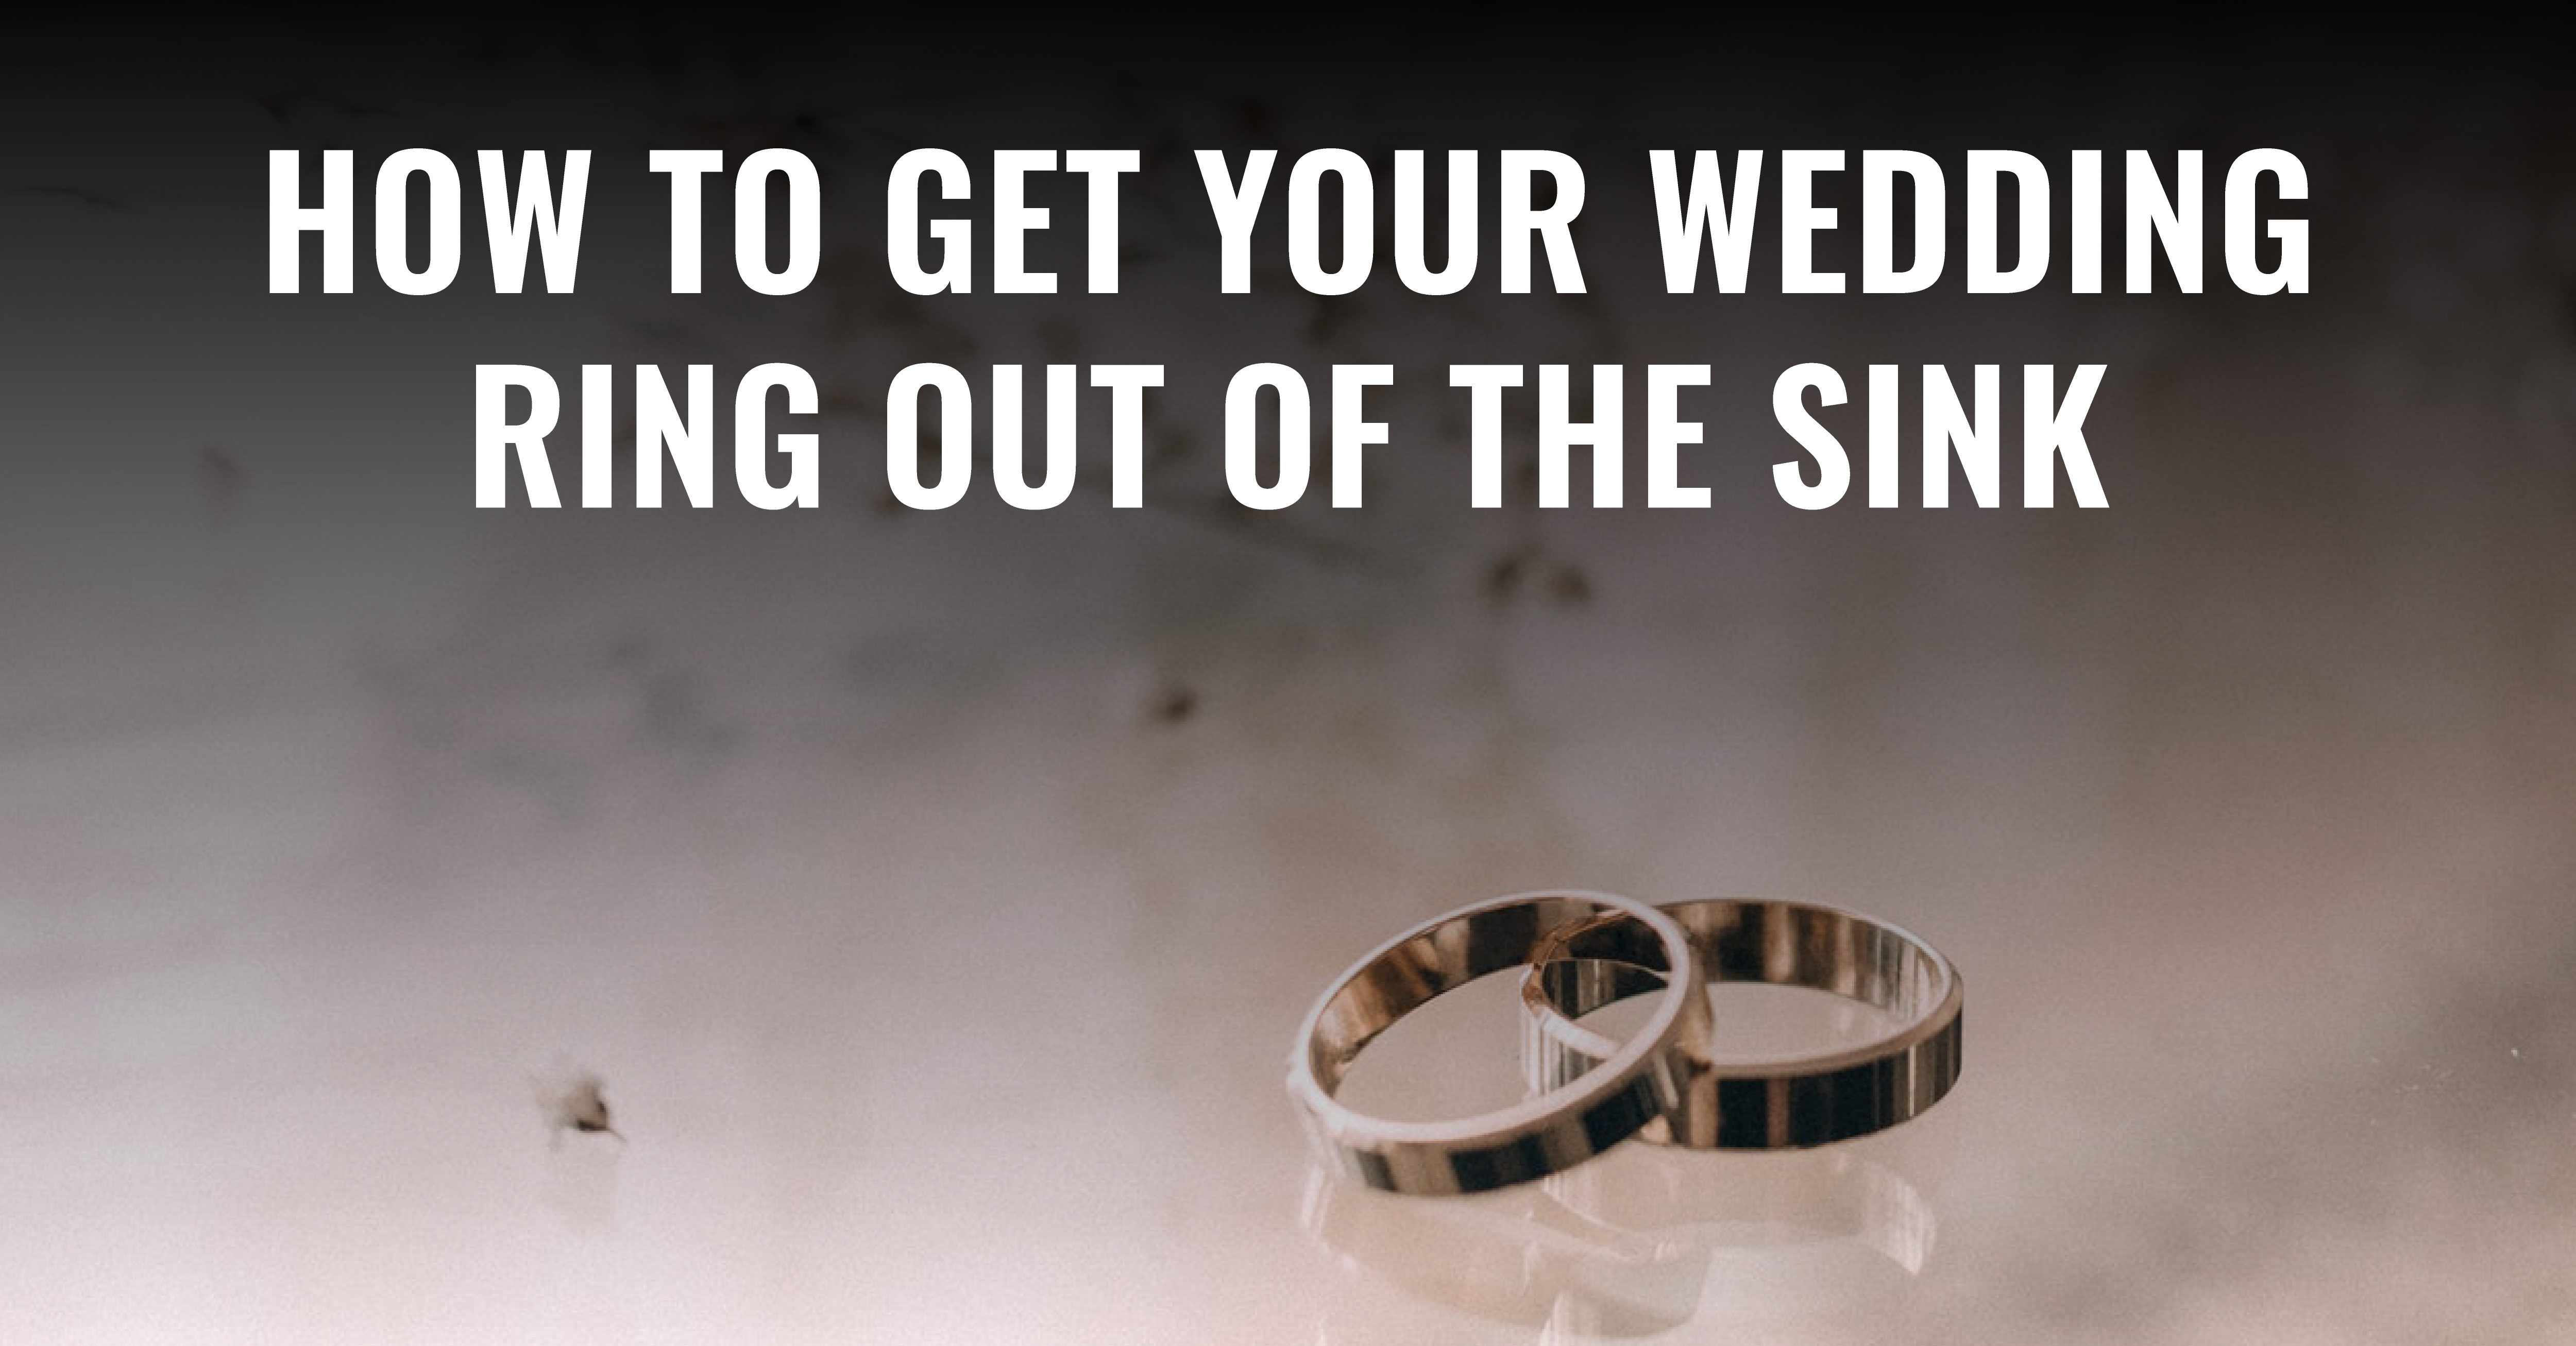 How To Get Your Wedding Ring Out Of The Sink